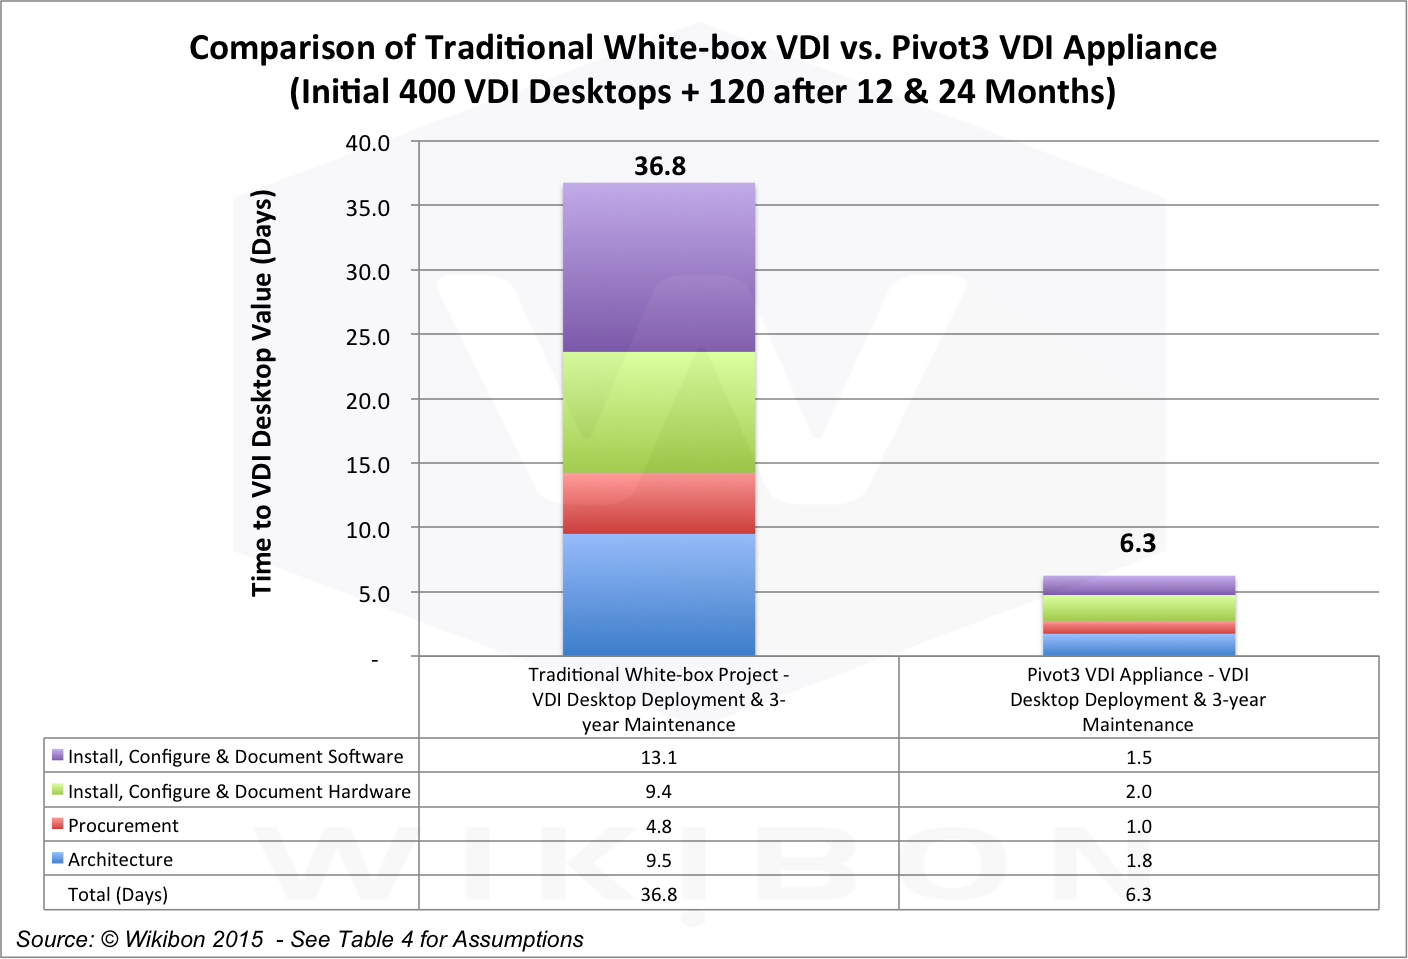 Figure 6: Breakout of Time-to-Value Comparison of Traditional White Box VDI with Pivot3 VDI Appliance (640 VDI Desktops)Source: © Wikibon 2015, based on the assumptions and calculations in Table 4 in the Footnotes, itself derived from Tables 5 & 6 in the Footnotes below